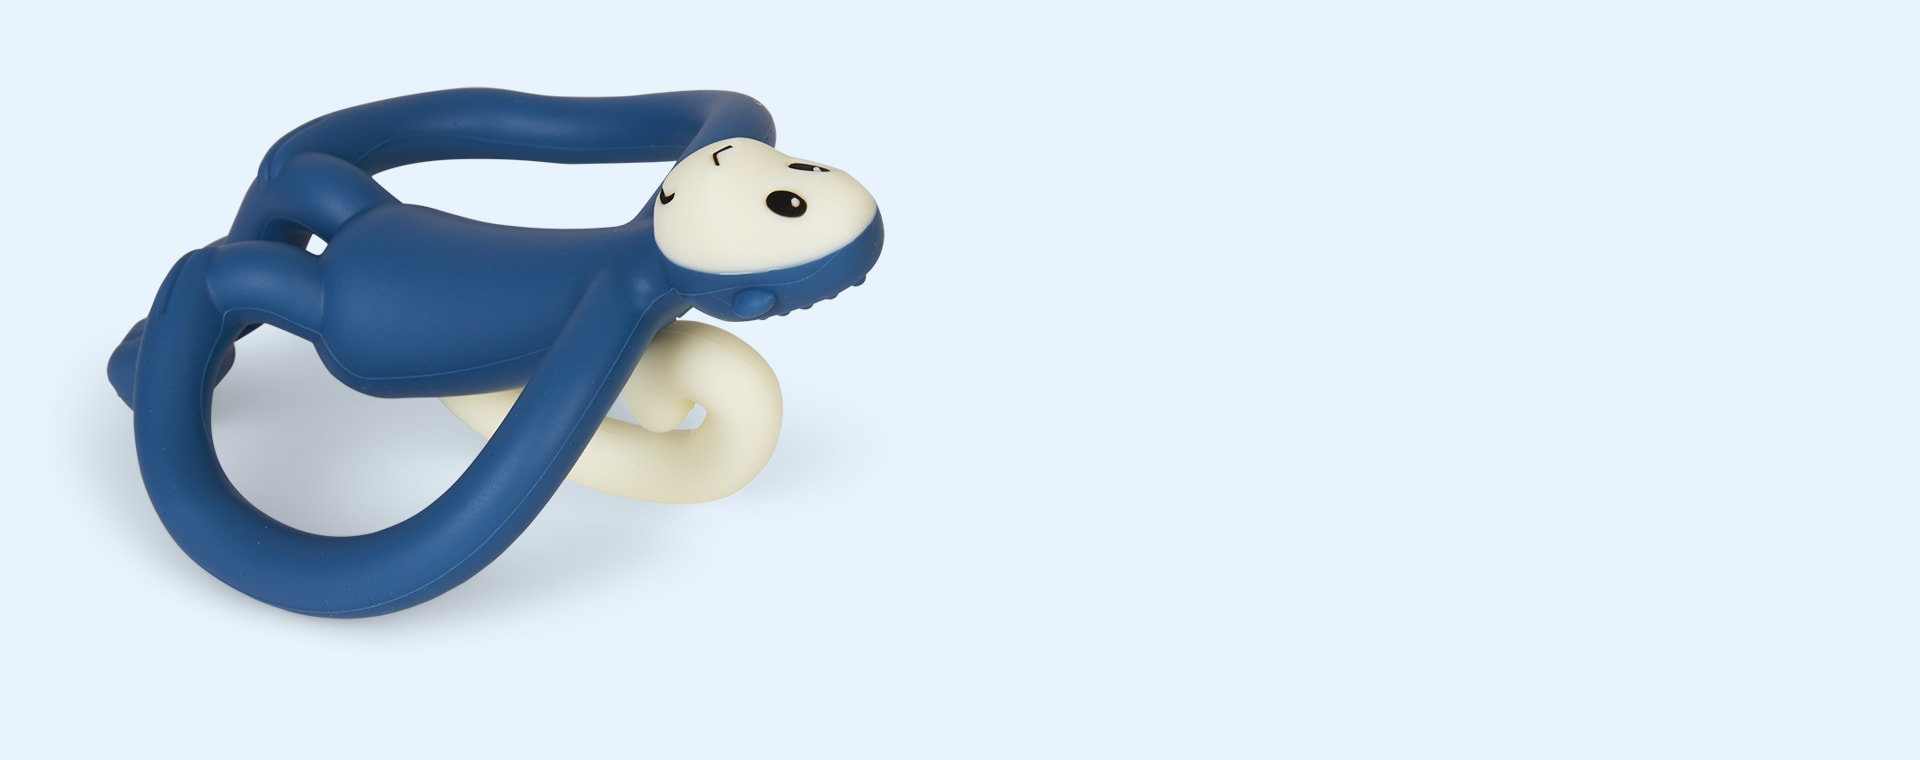 Airforce Blue Matchstick Monkey Monkey Teether